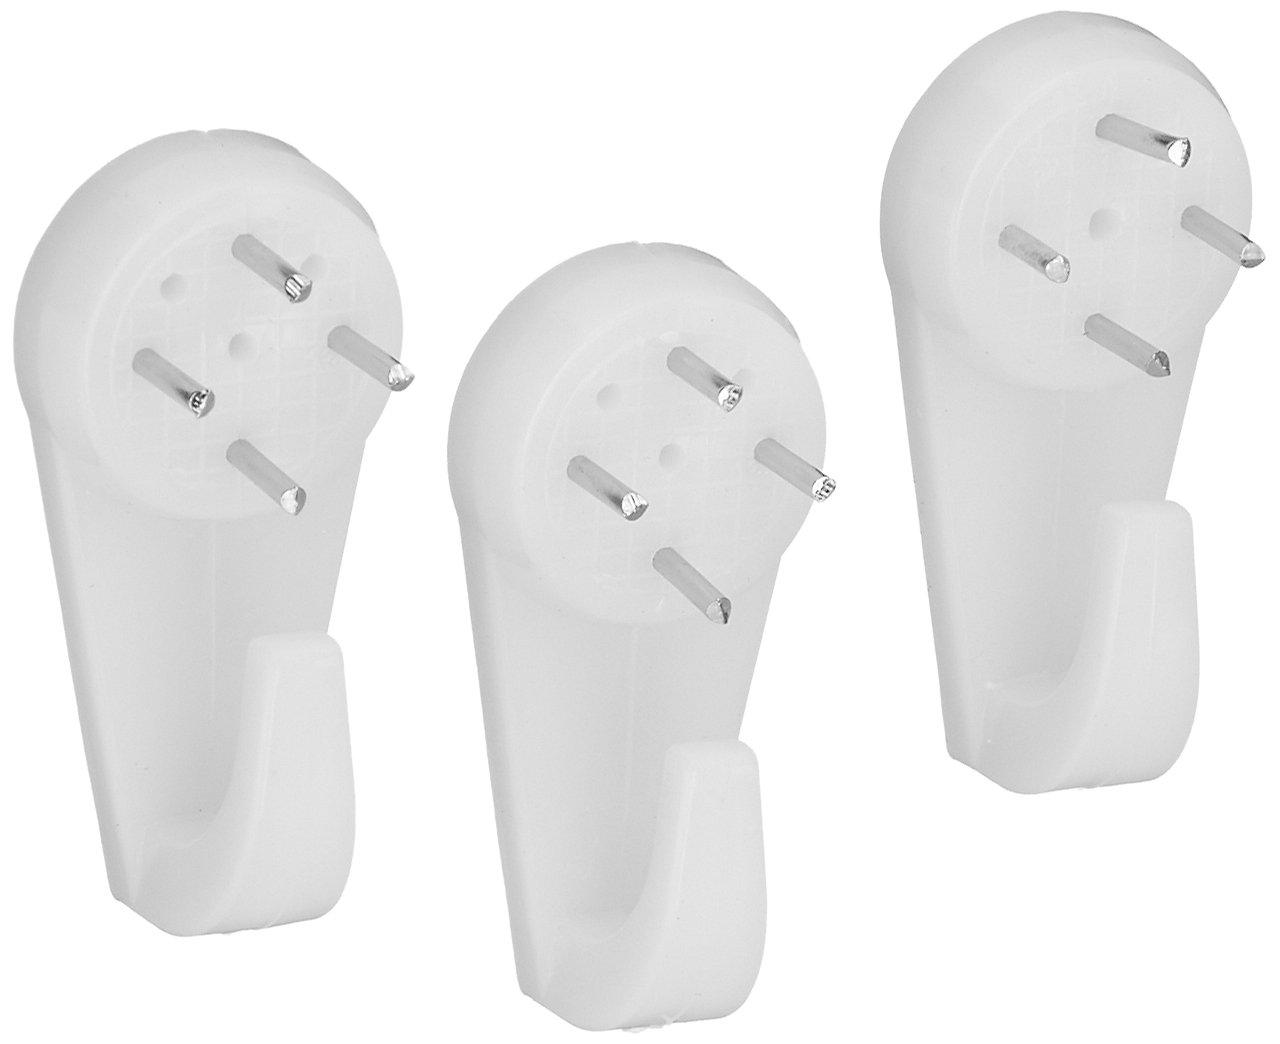 "OOK 50096 25lbs Hardwall Hanger (1-1/2"") (3 Pack) - Picture Hanging Hardware - Amazon.com"